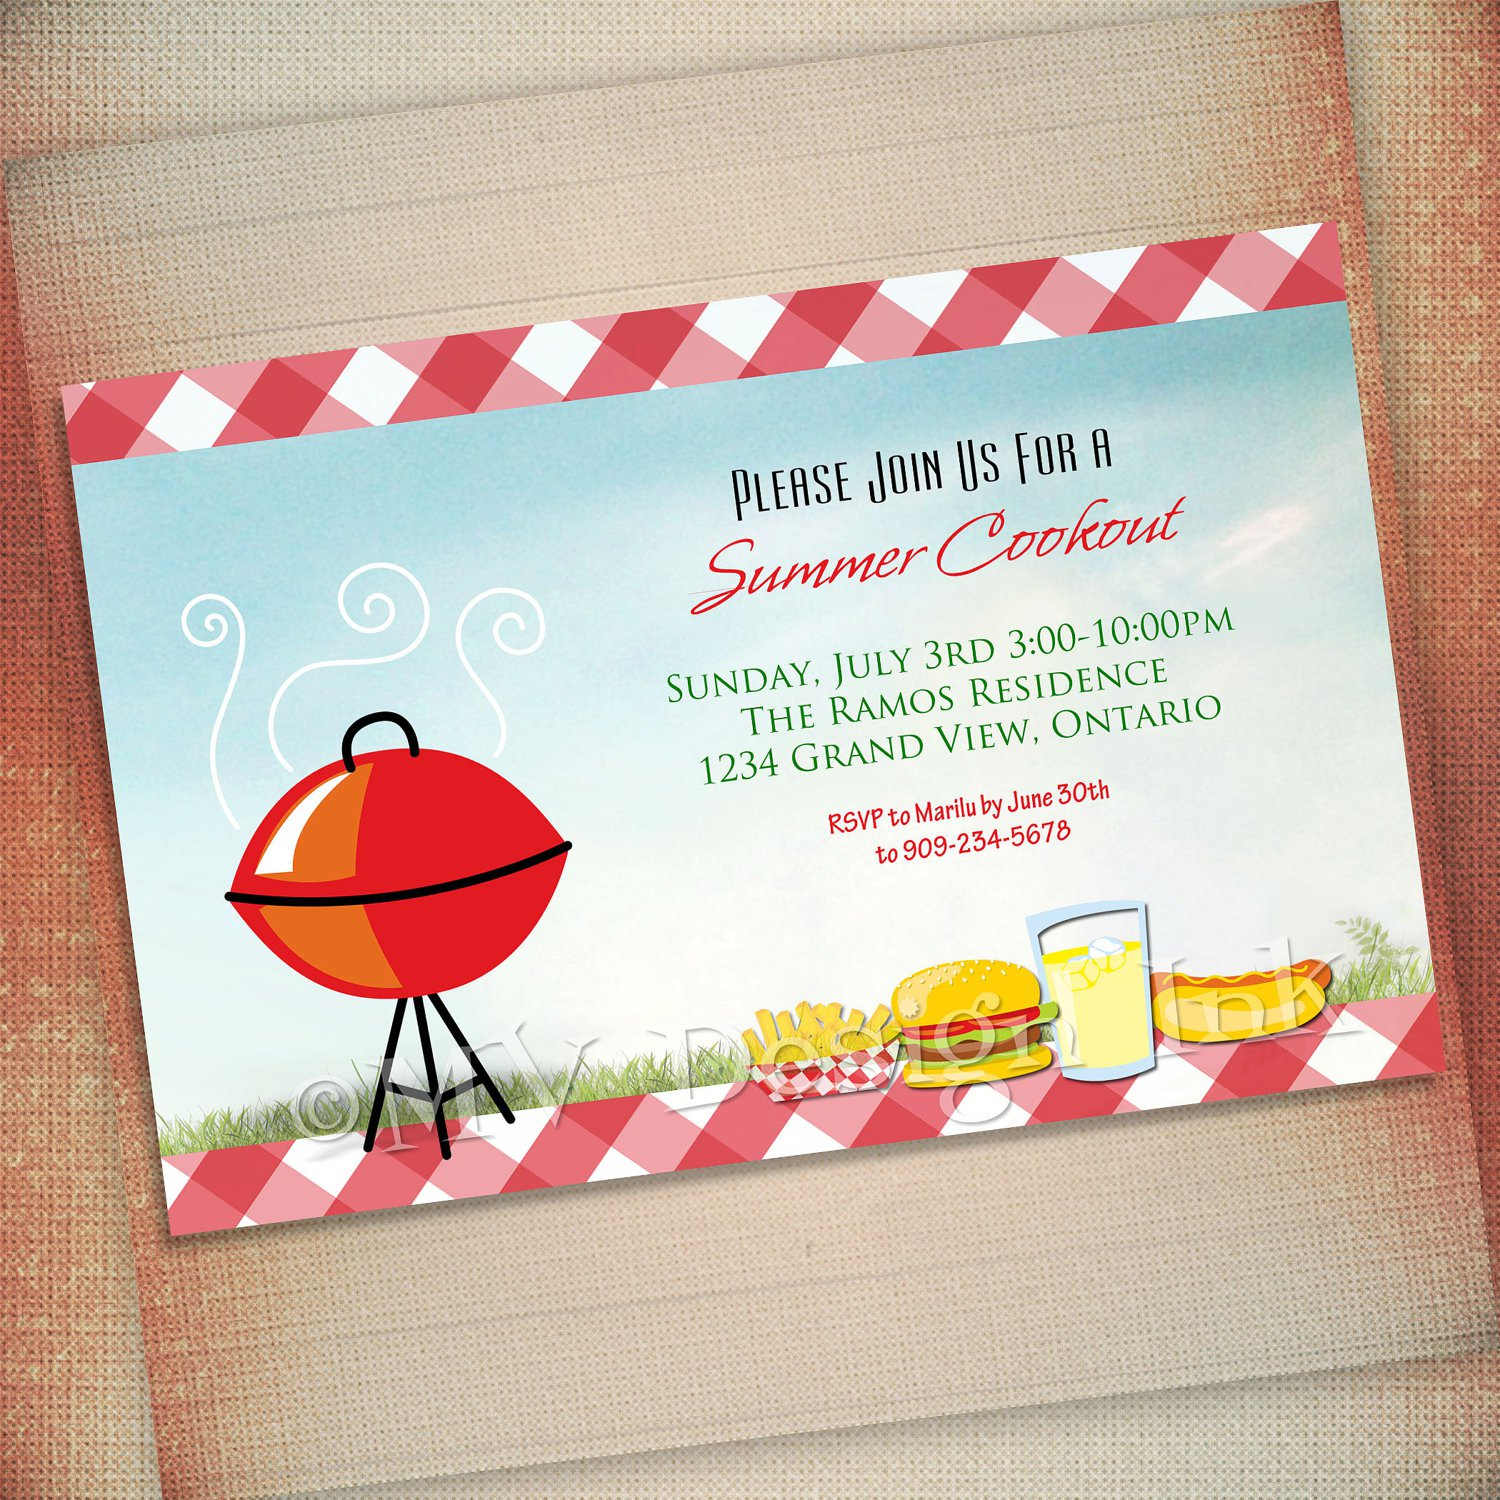 Blank Cookout Invitations